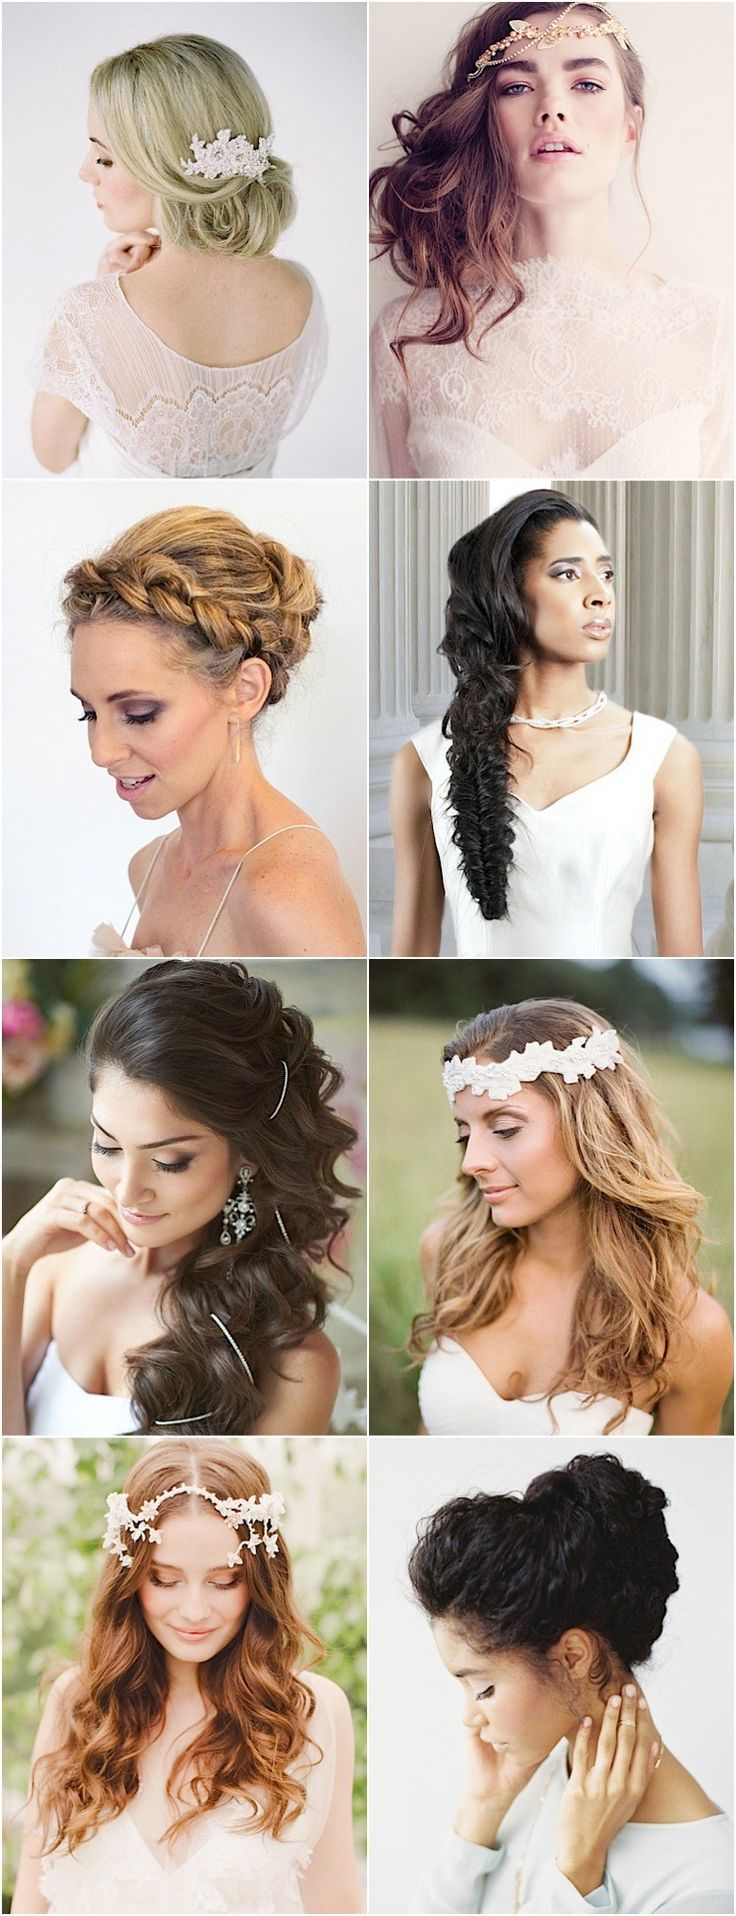 22 Romantic Wedding Hairstyles for Every Bride #wedding #updo